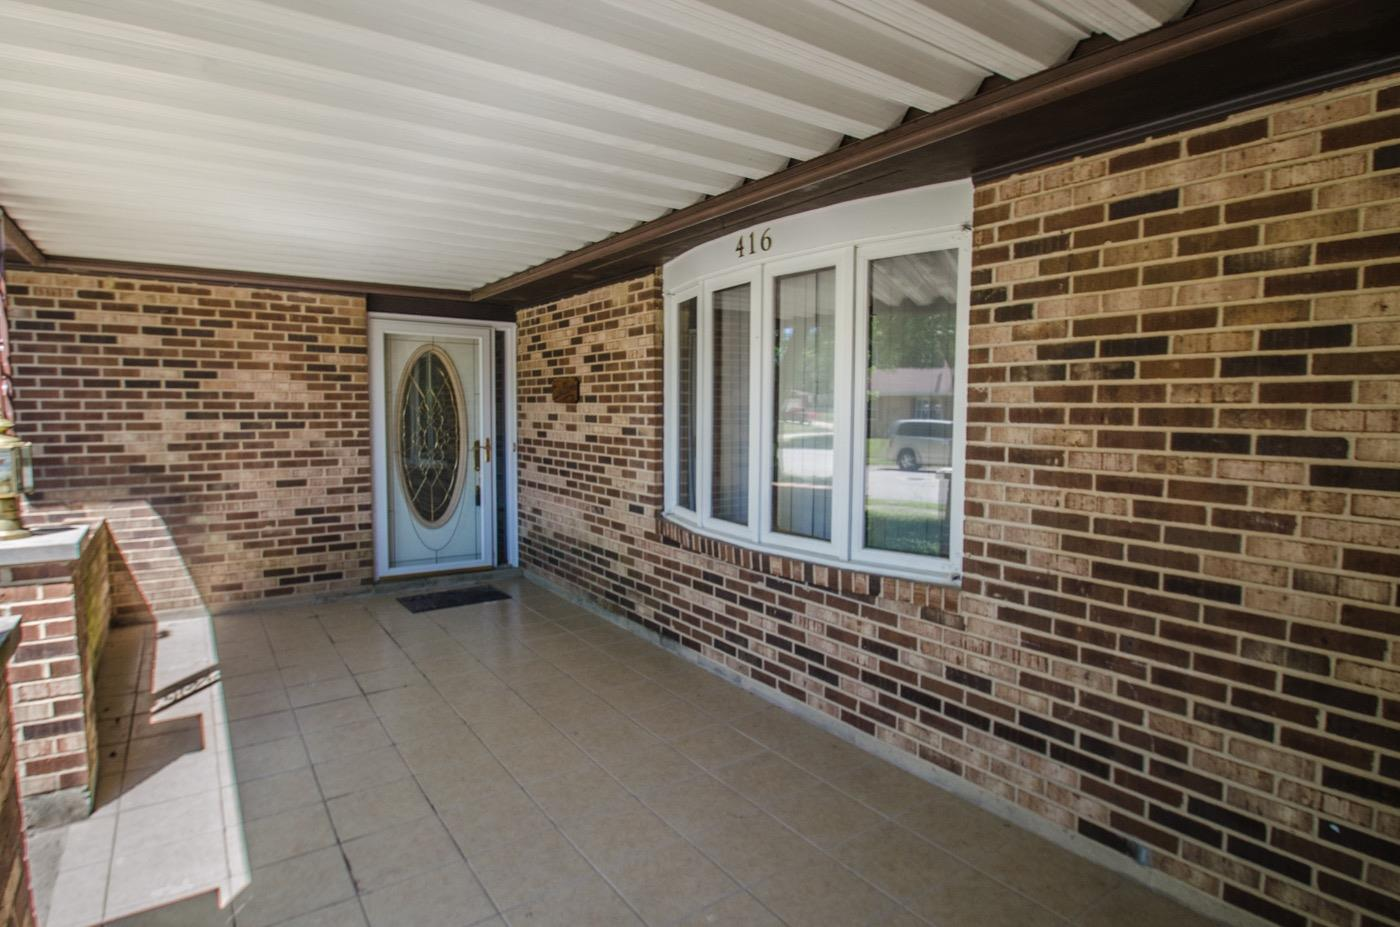 Photo 2 for 416 Jamesway Dr Preble County, OH 45320